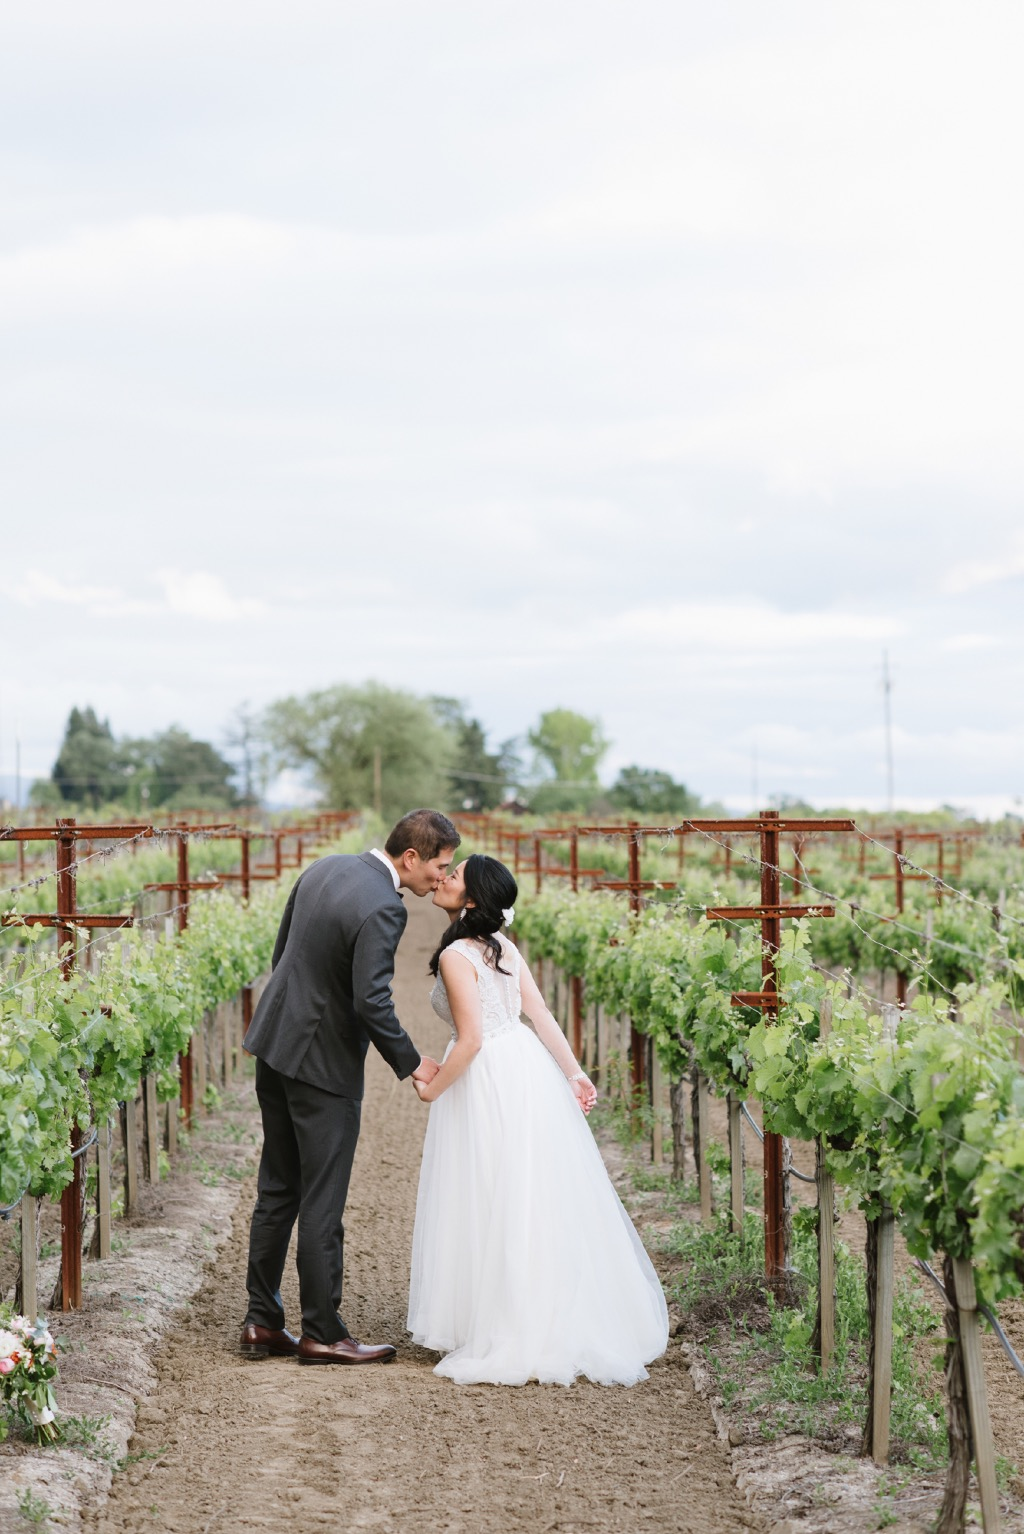 caitlinoreillyphotography_0428_farmsteadwedding-129.jpg